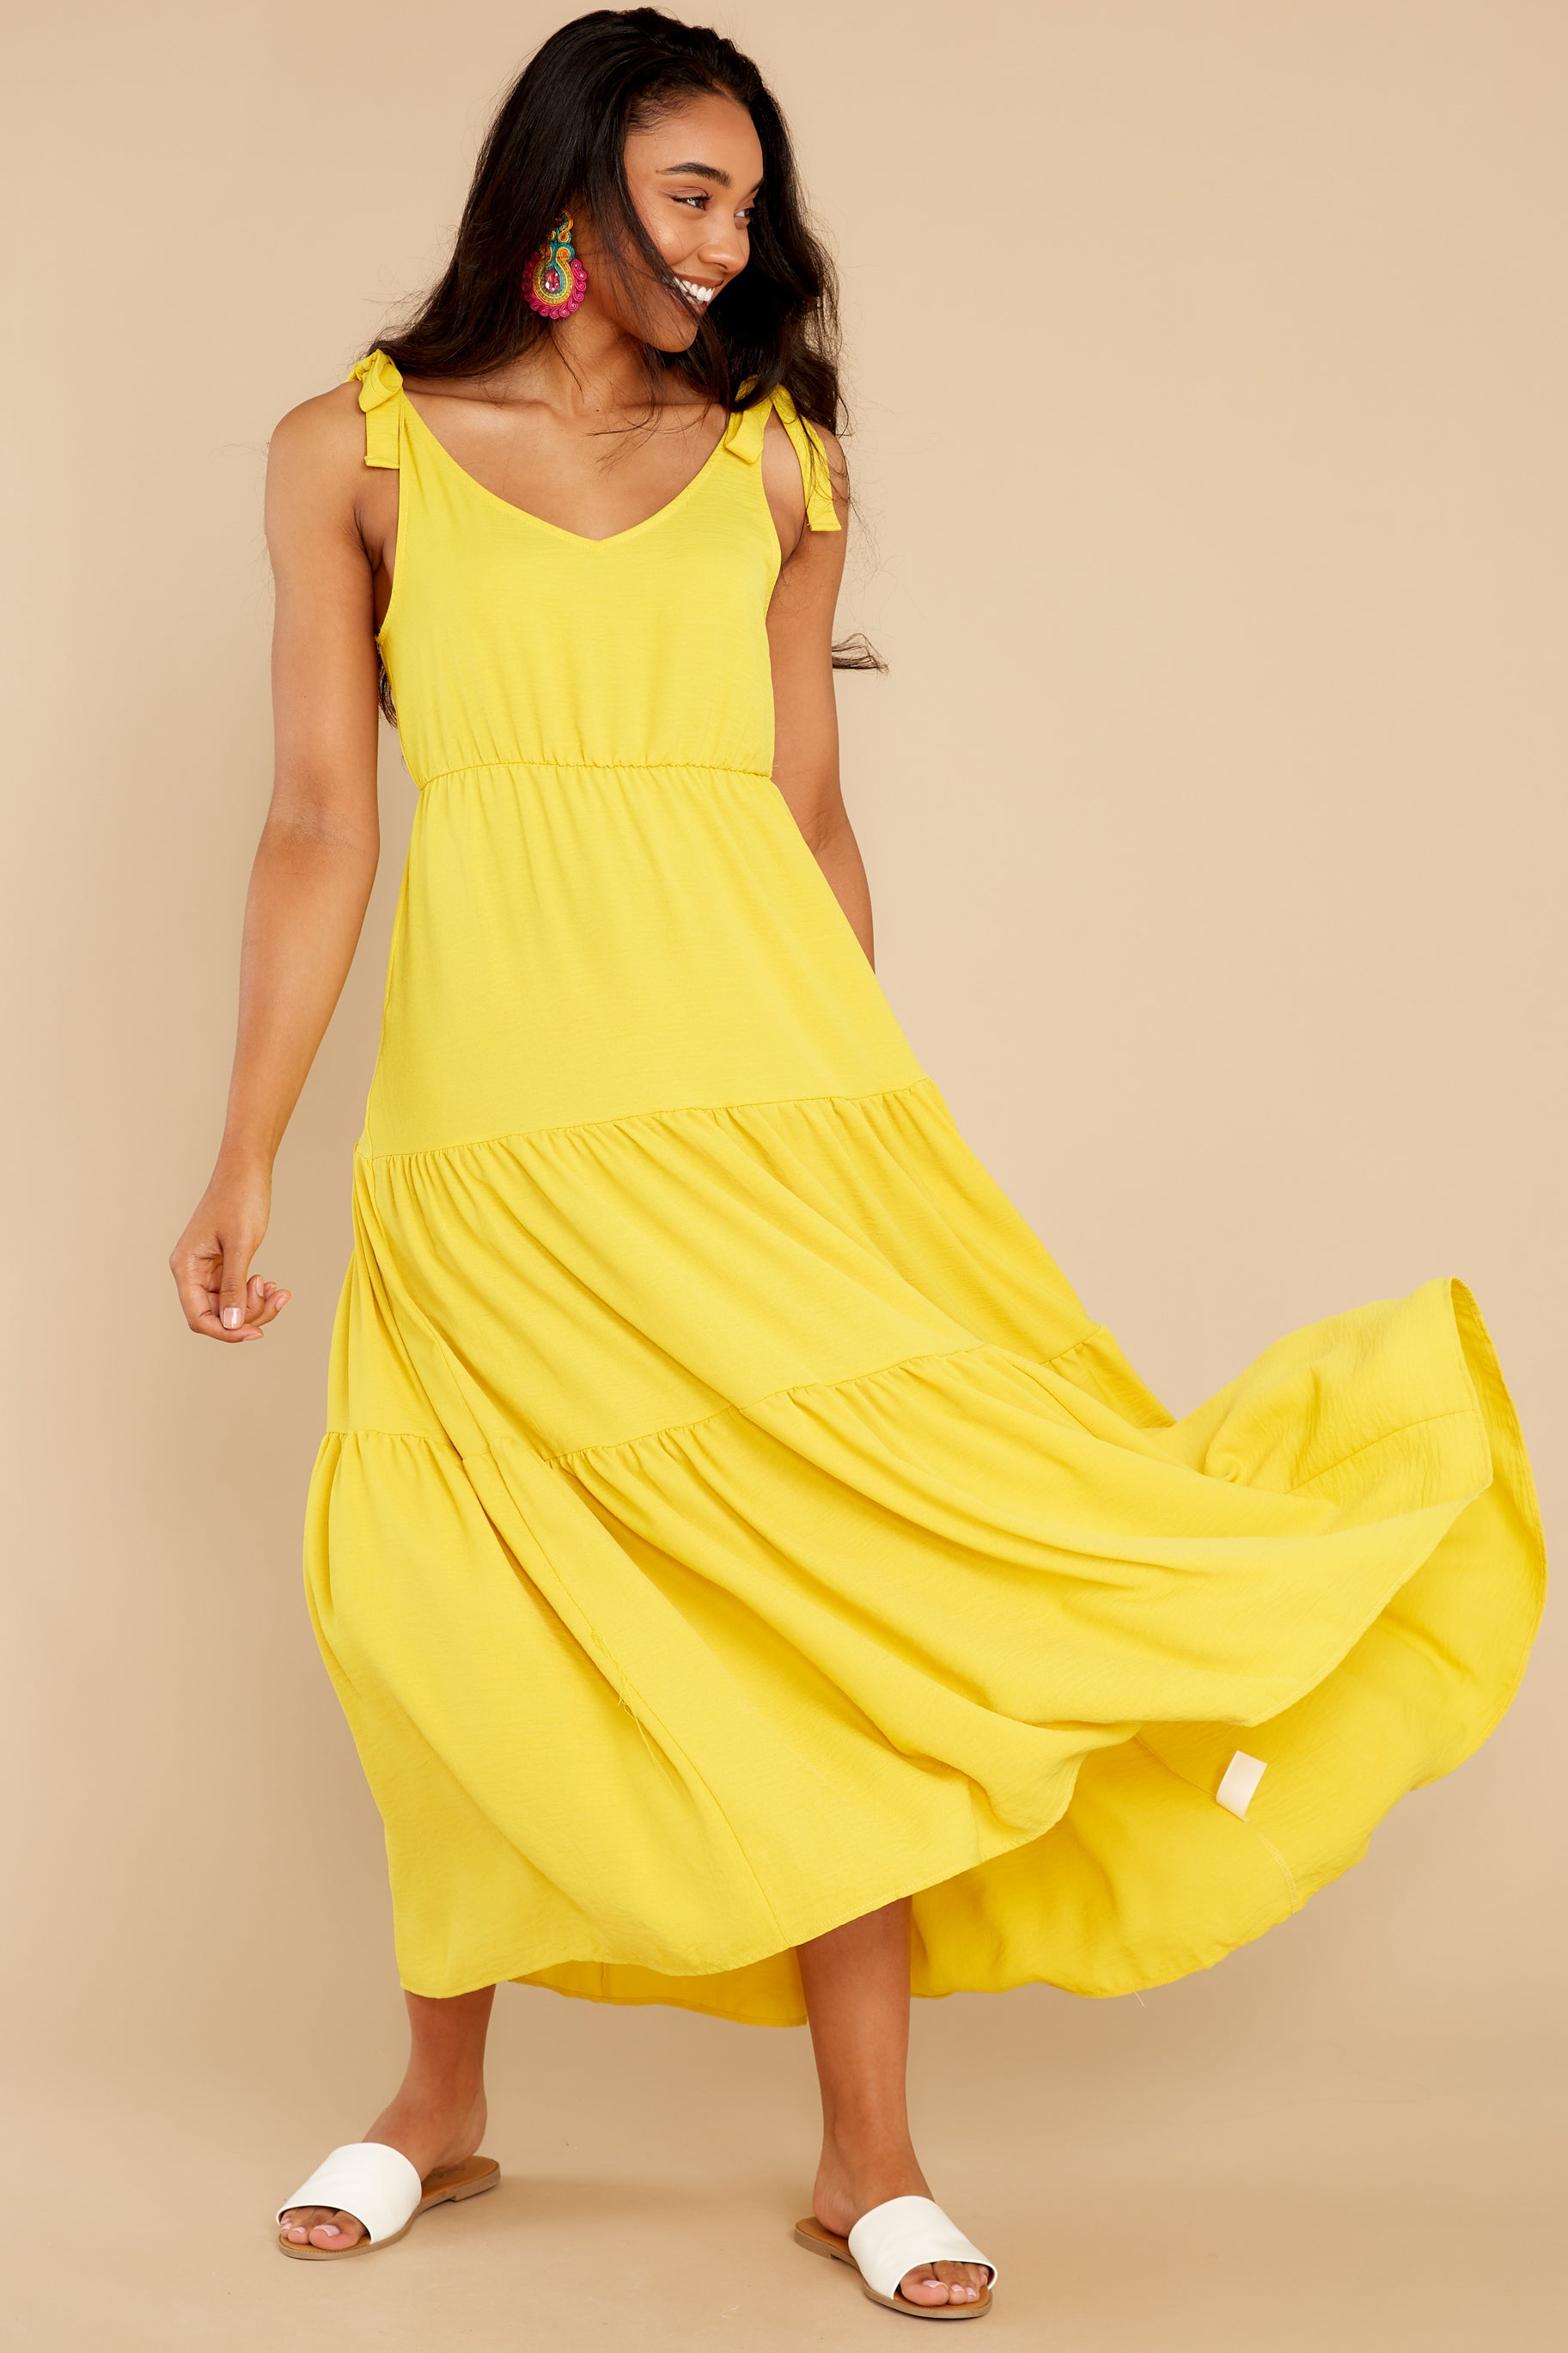 4 Right Kind Of Attention Yellow Maxi Dress at reddress.com